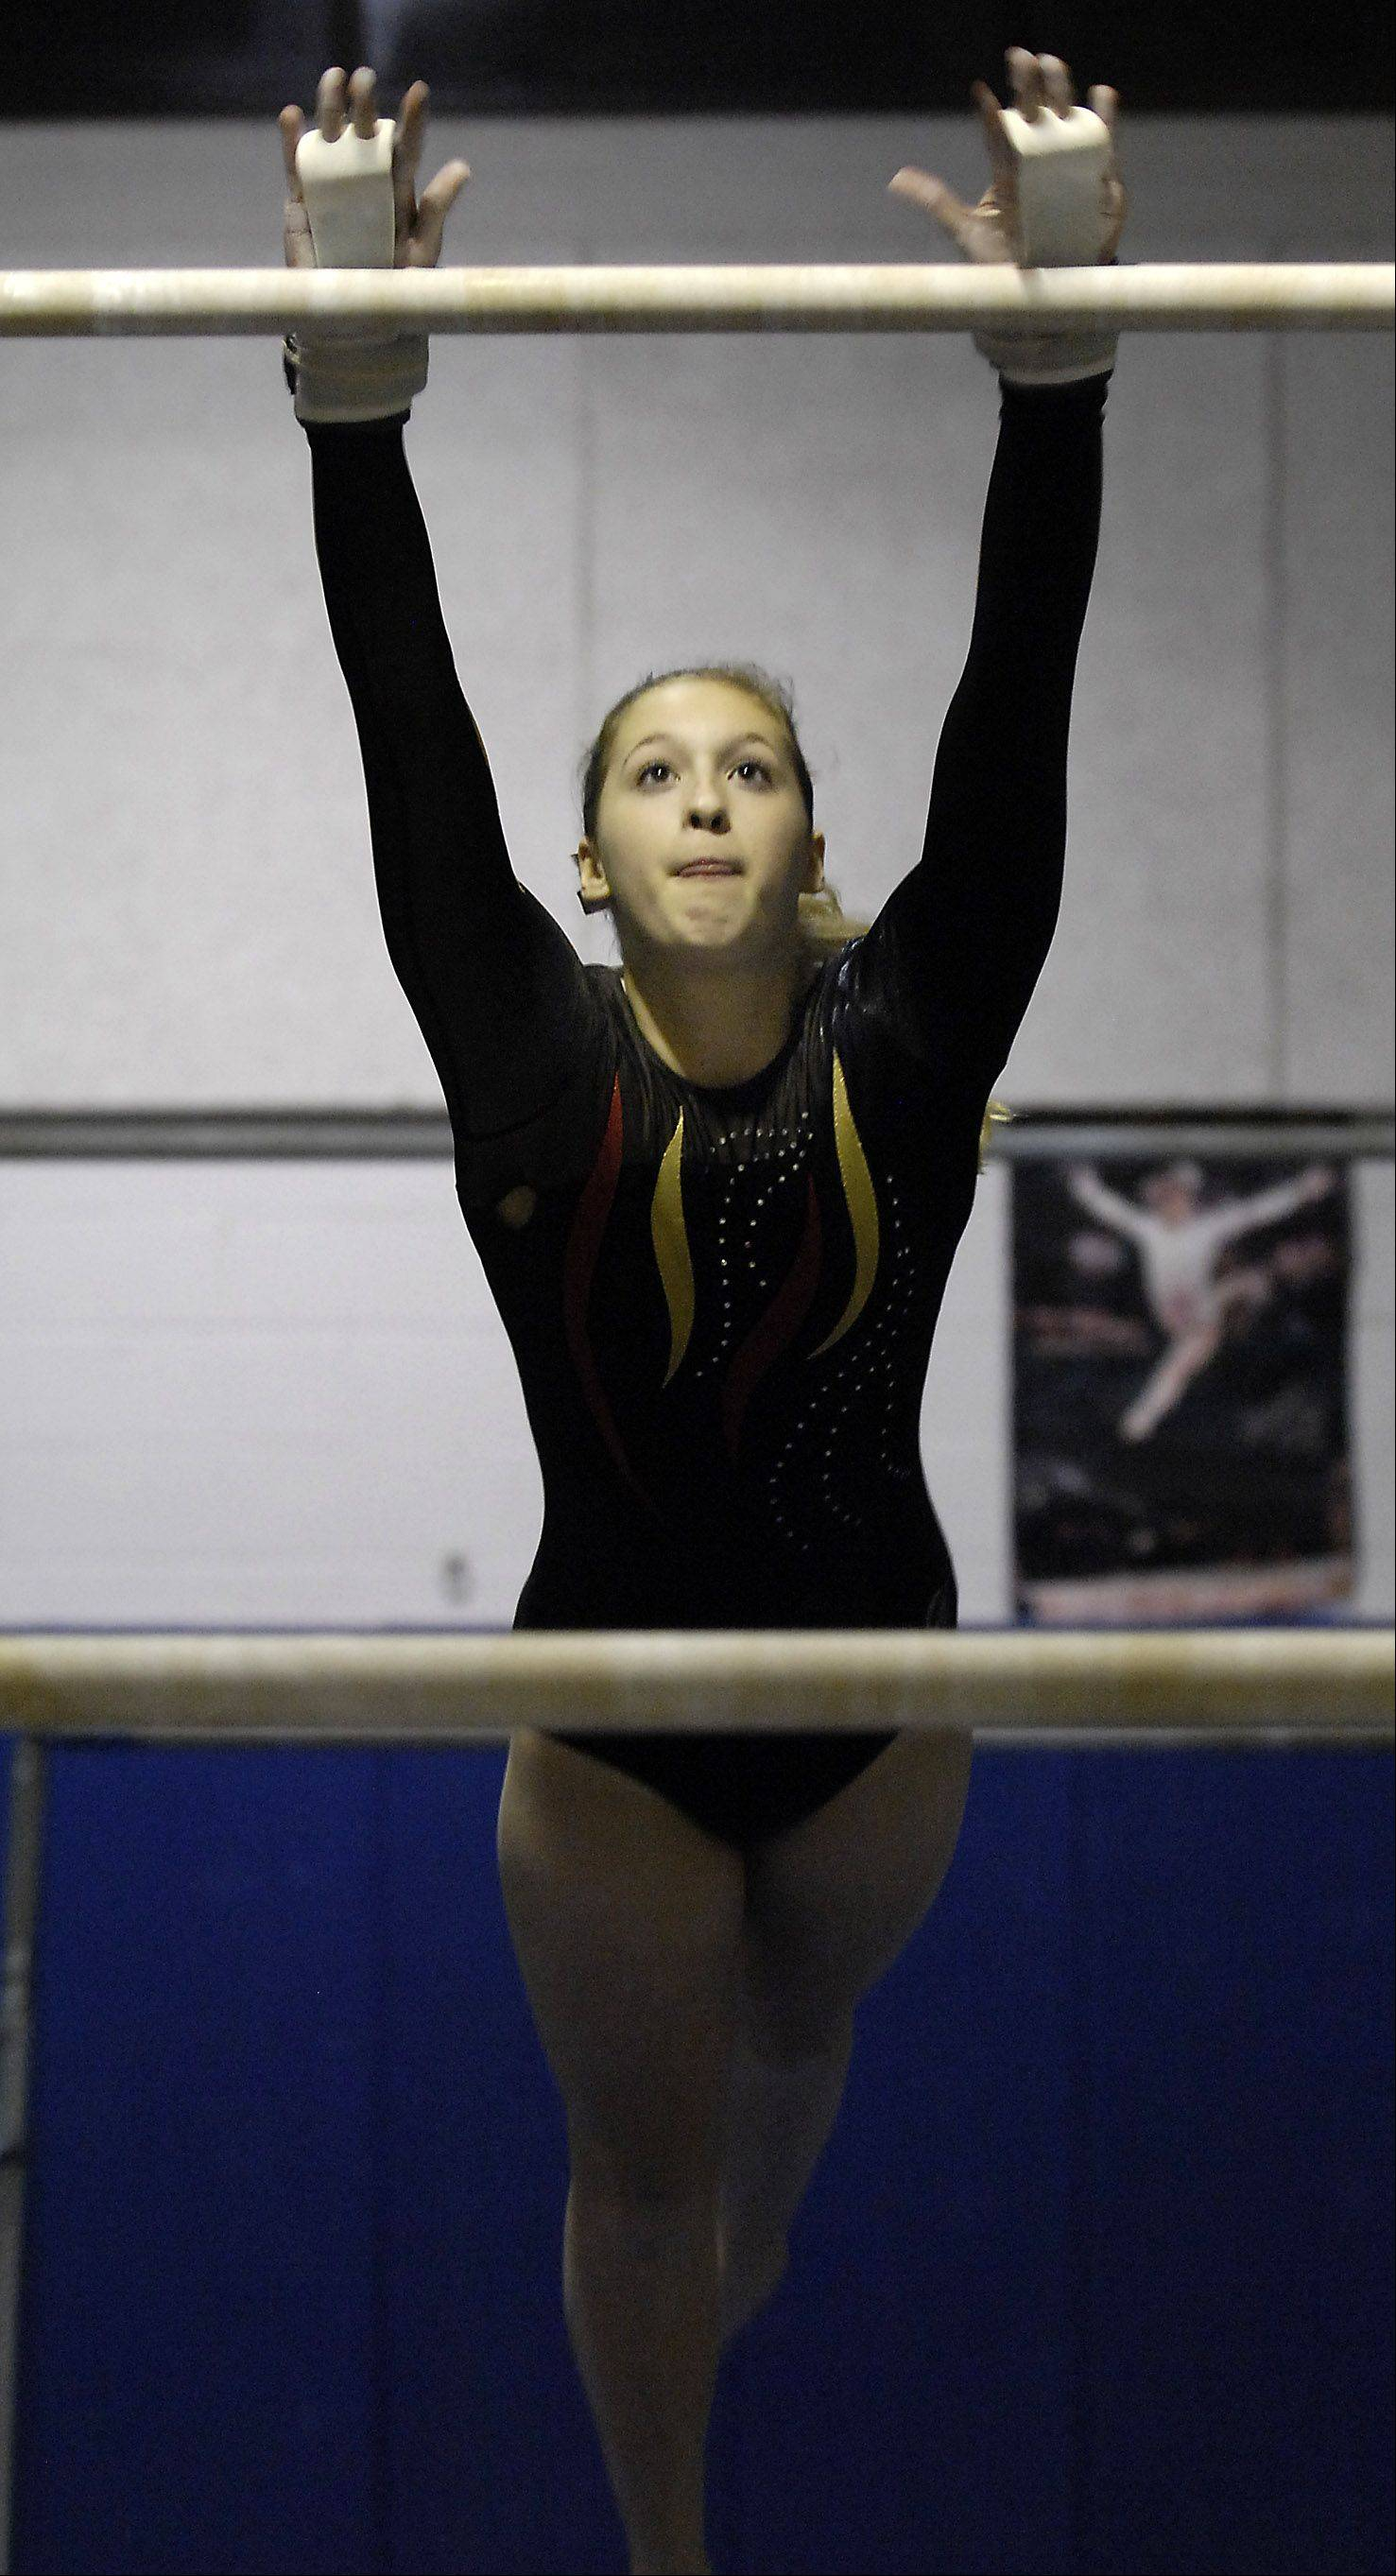 Batavia's Kristy Zabka competes in the uneven bars during Monday's girls gymnastics meet in Batavia.